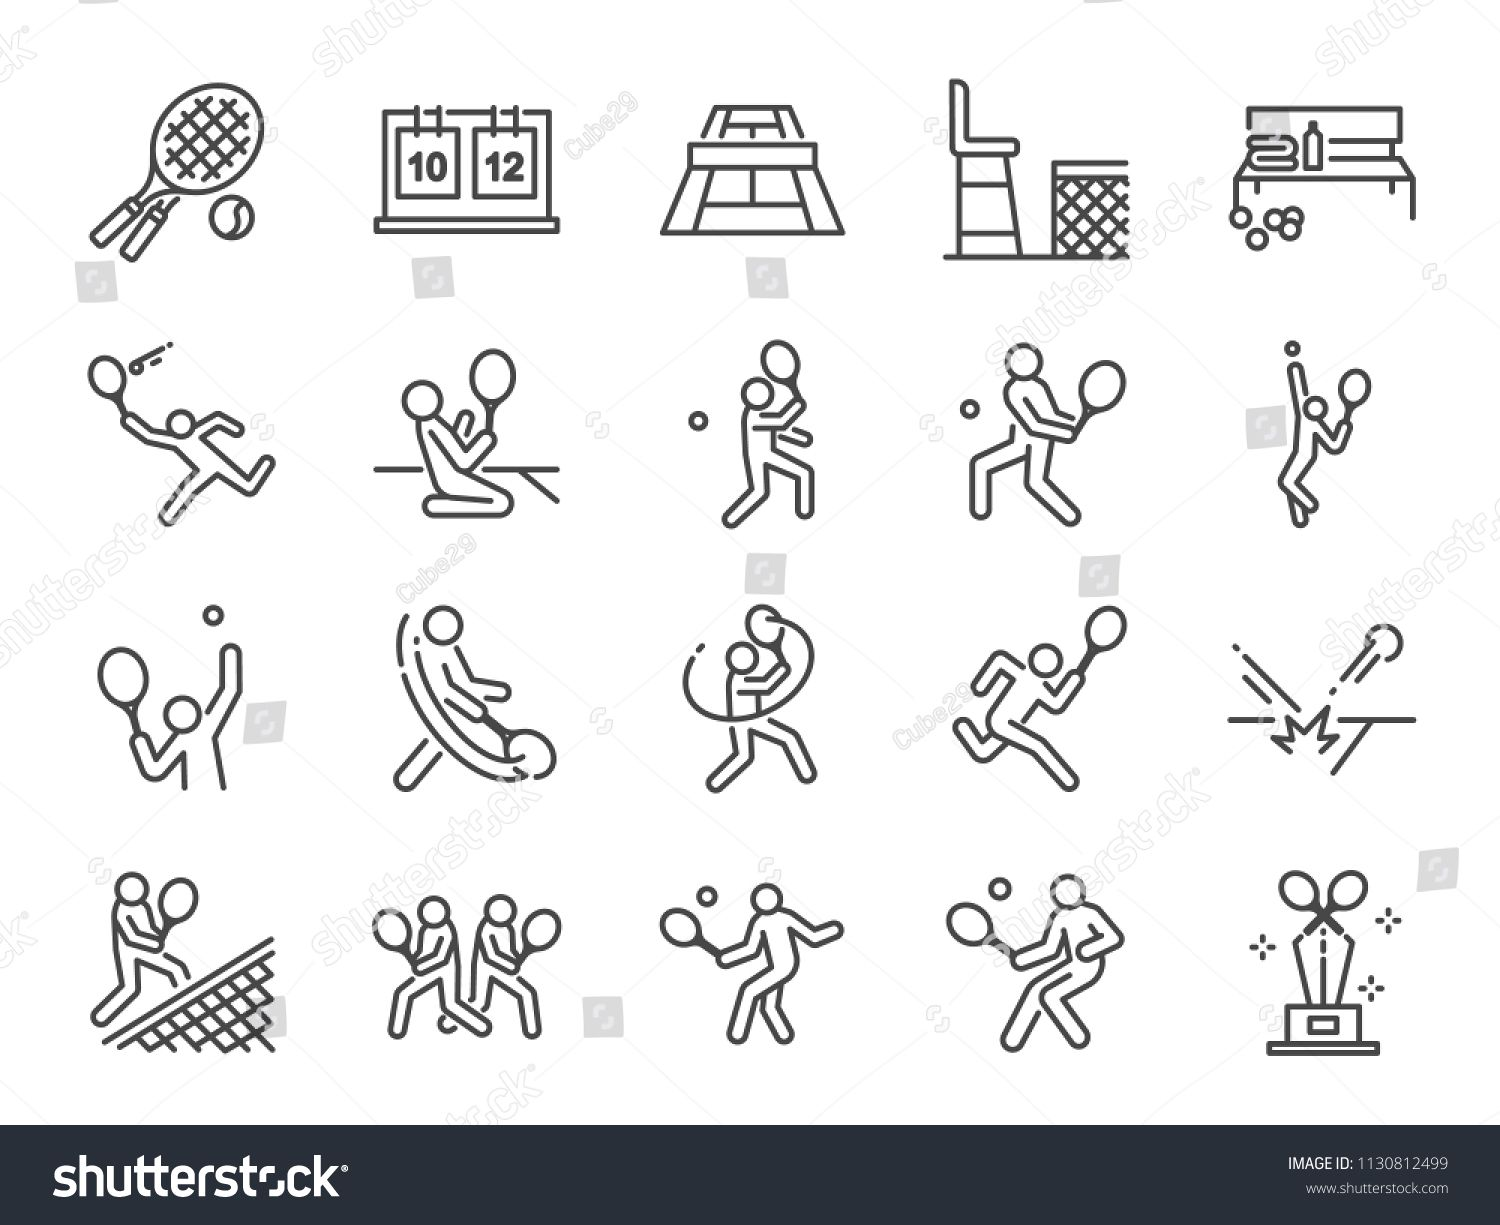 Tennis Icon Set Included Icons As Doubles Tennis Tennis Player Match Serve Forehand Backhand And More Included Icon Icon Set Vector Free Icon Set Vector